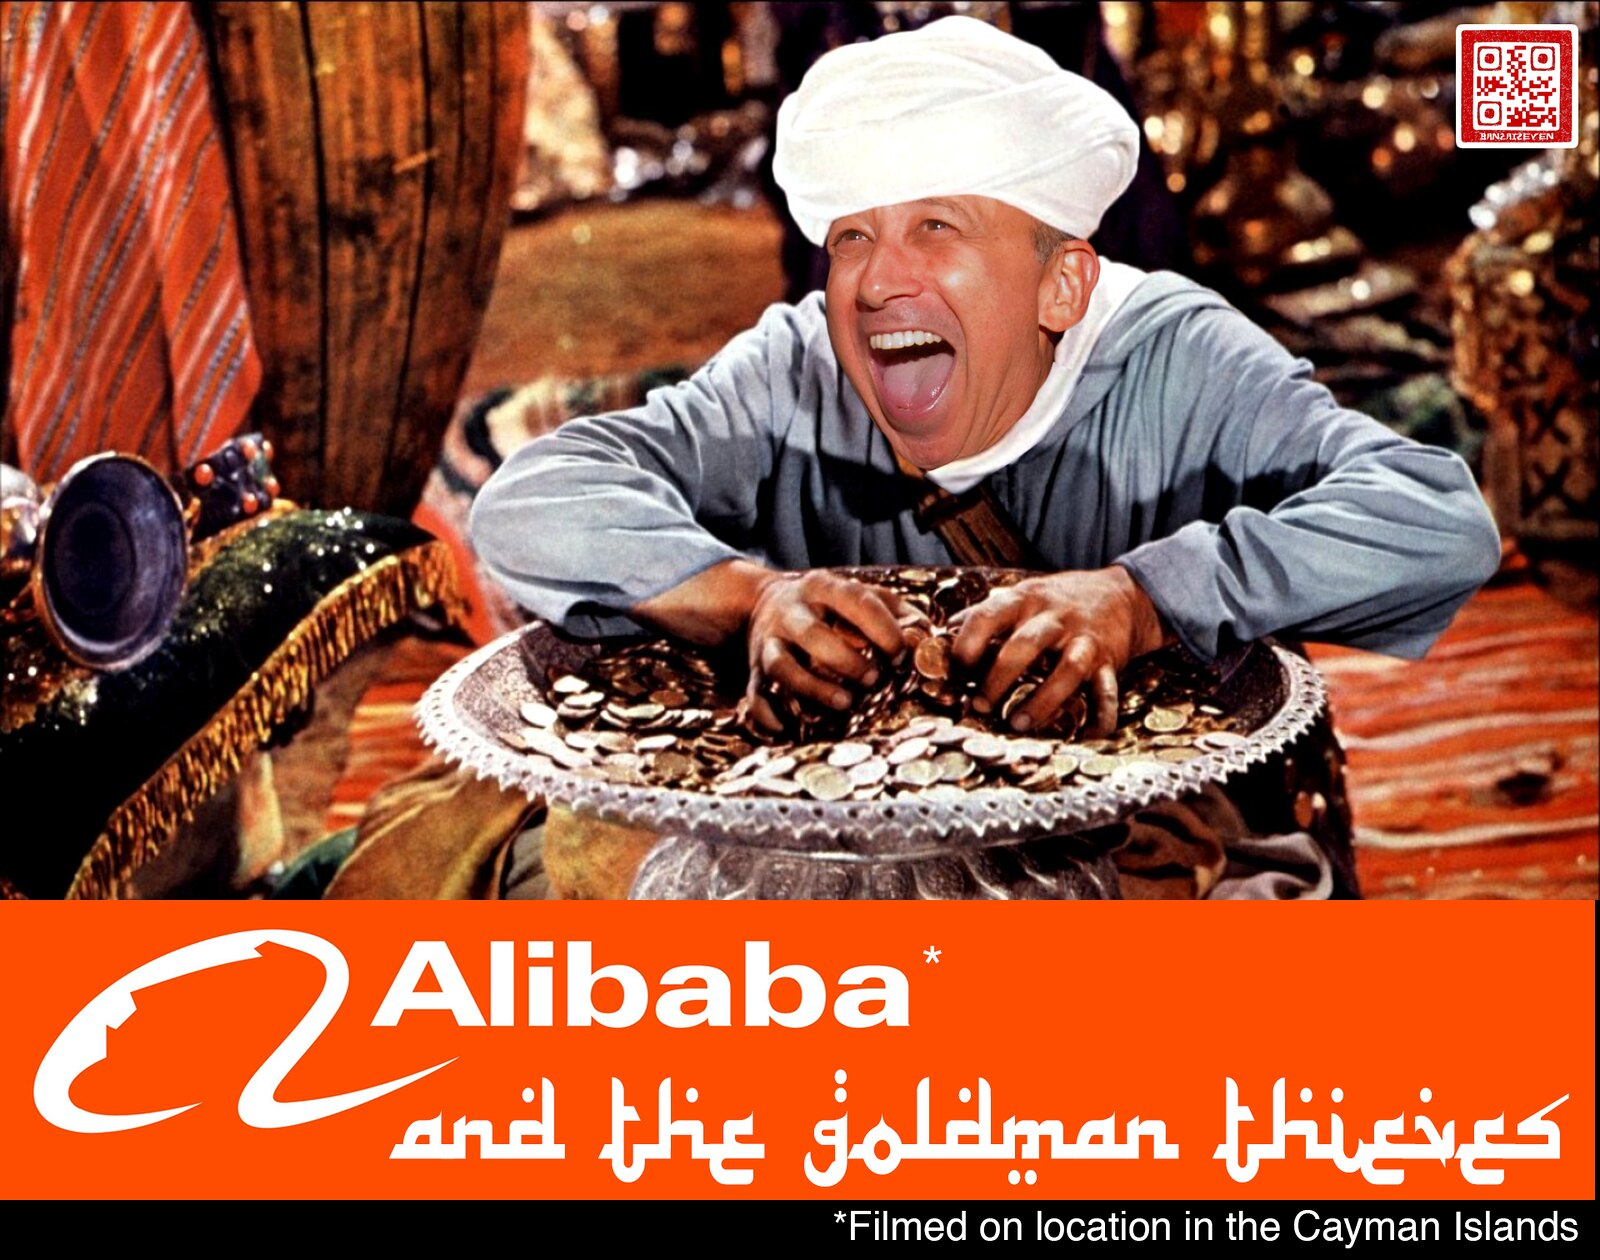 ALIBABA AND THE GOLDMAN THIEVES